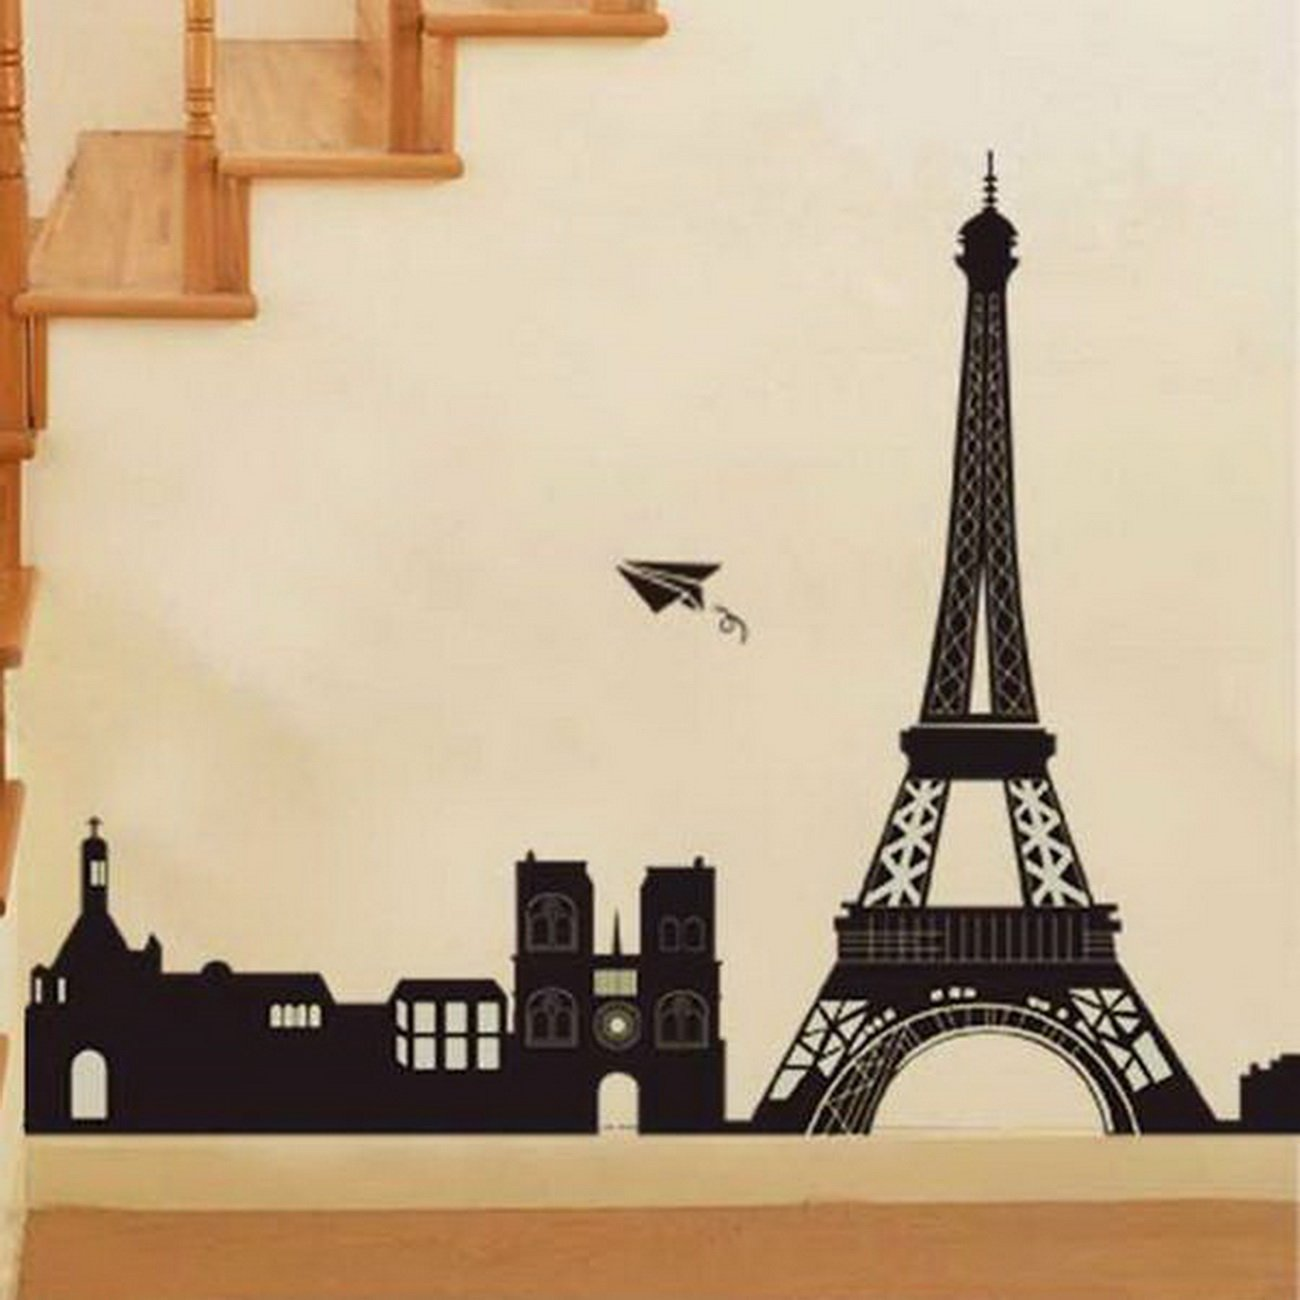 Amazon.com: Large I Love Paris Eiffel Tower City Silhouette Wall Stickers  DIY Mural Art Decal Self Adhesive Removable PVC Wallpaper Decor,Black,23.6  ... Part 45